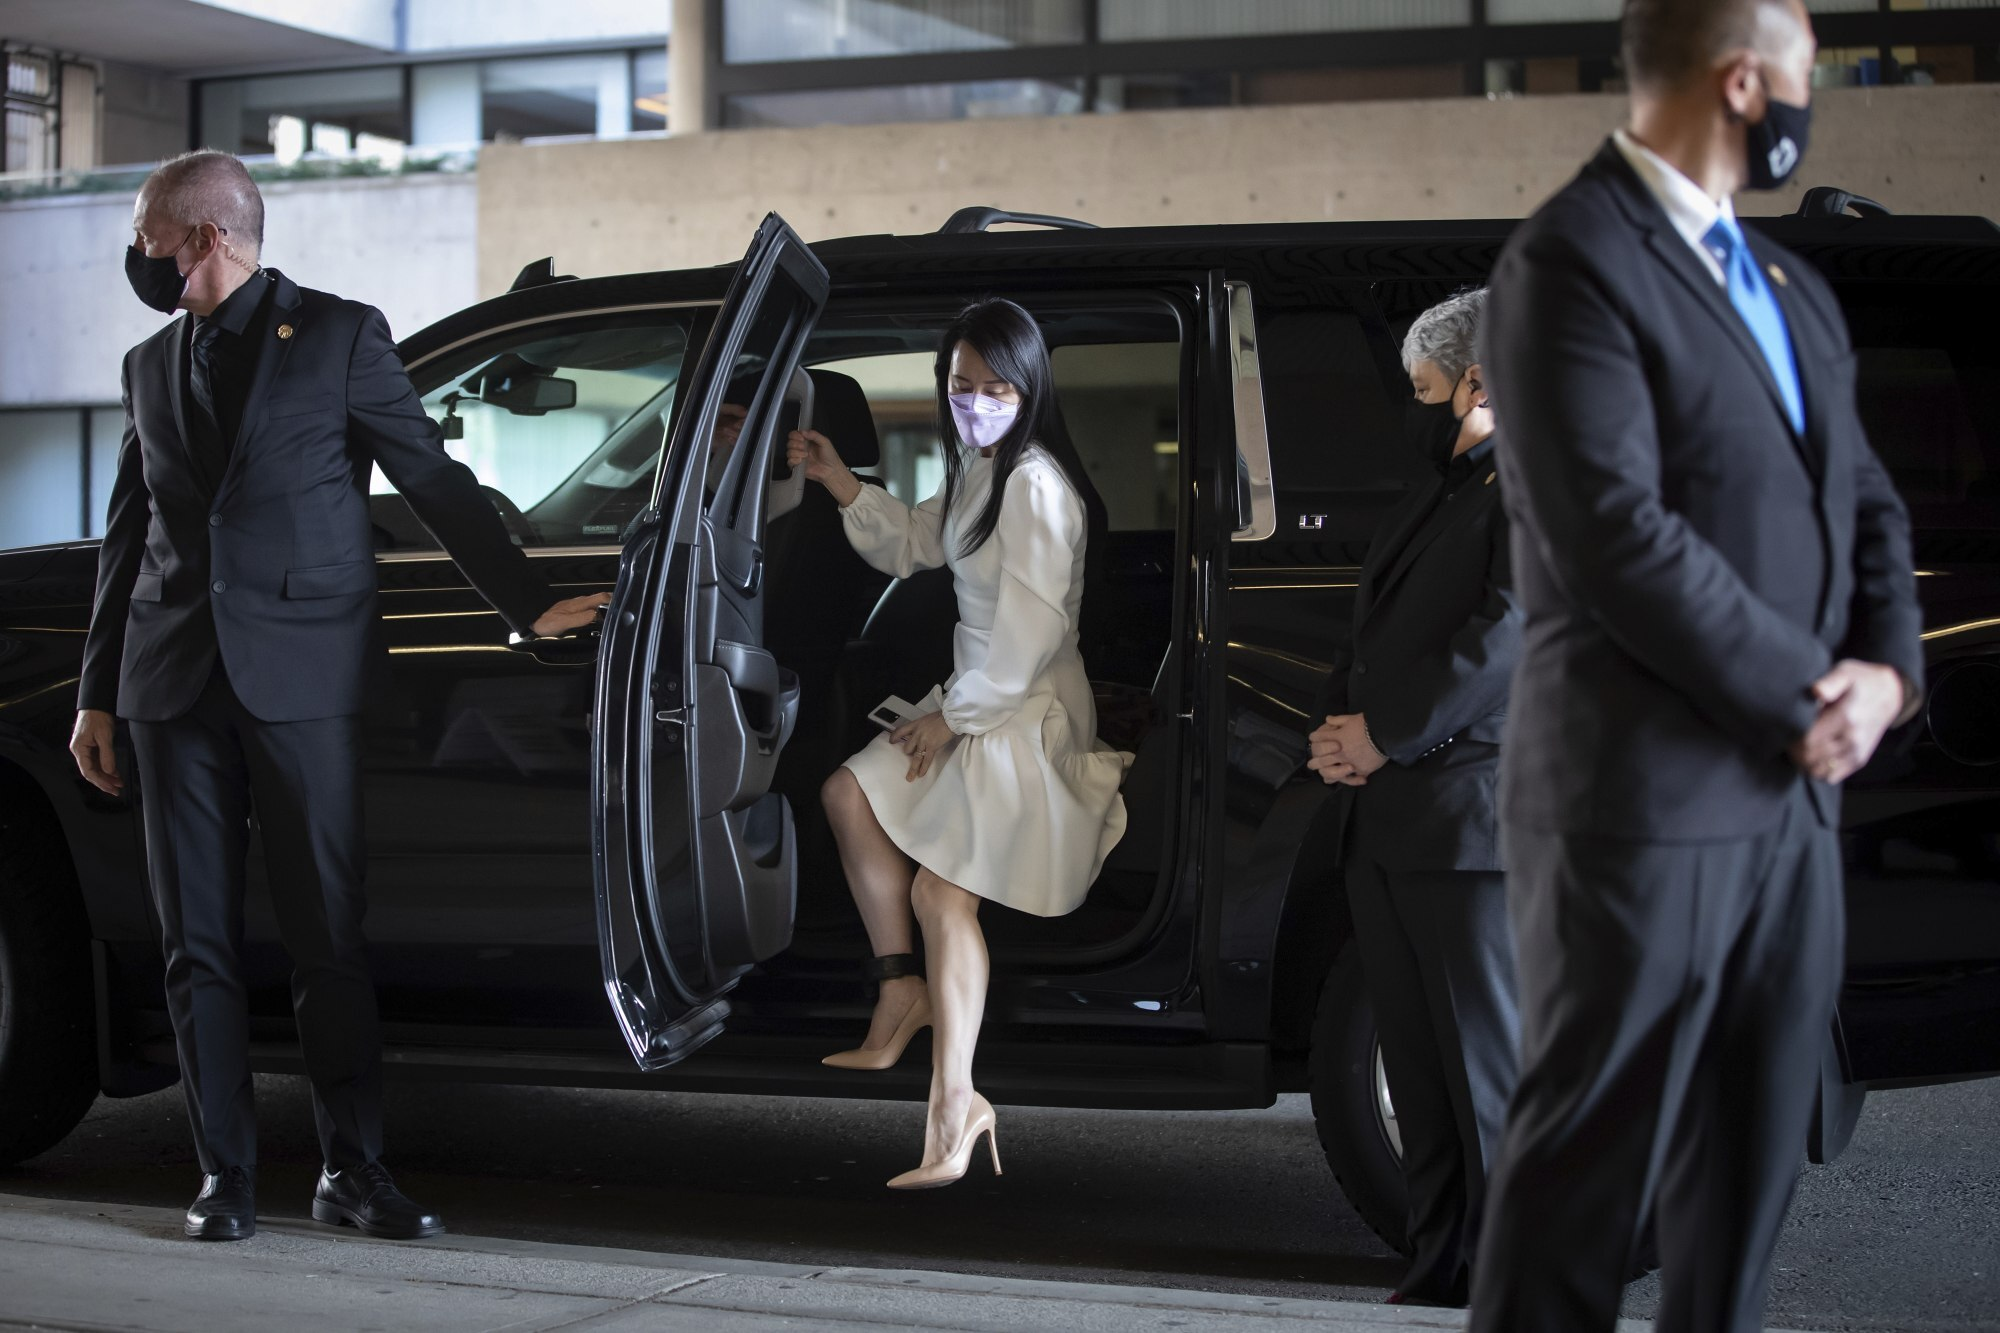 Meng Wanzhou, chief financial officer of Huawei, arrives at the Supreme Court of British Columbia in Vancouver to attend a hearing on March 31. Photo: The Canadian Press via AP